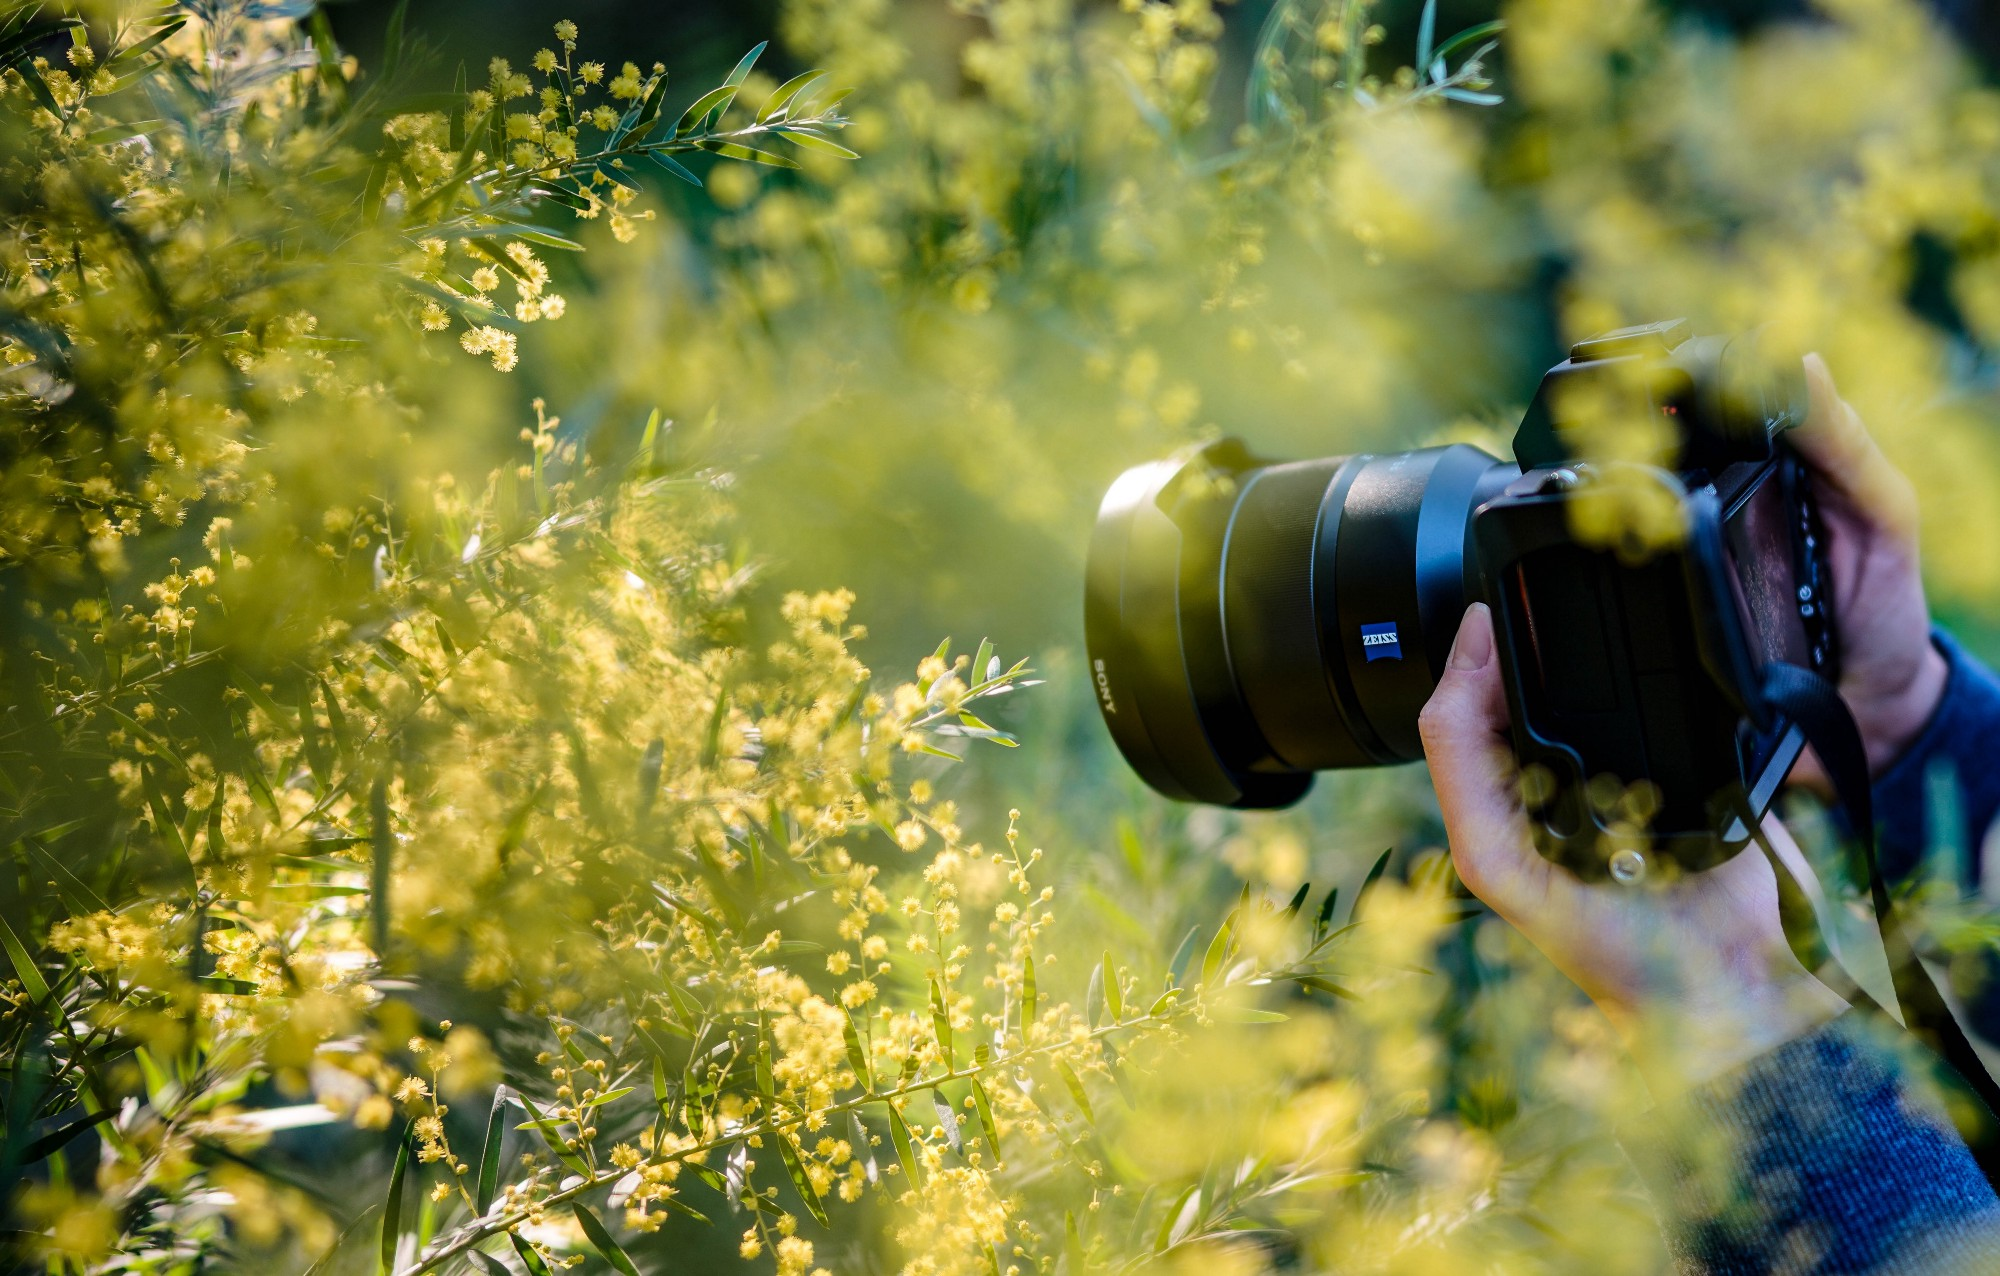 Image of a person holding a camera, photographing flowers